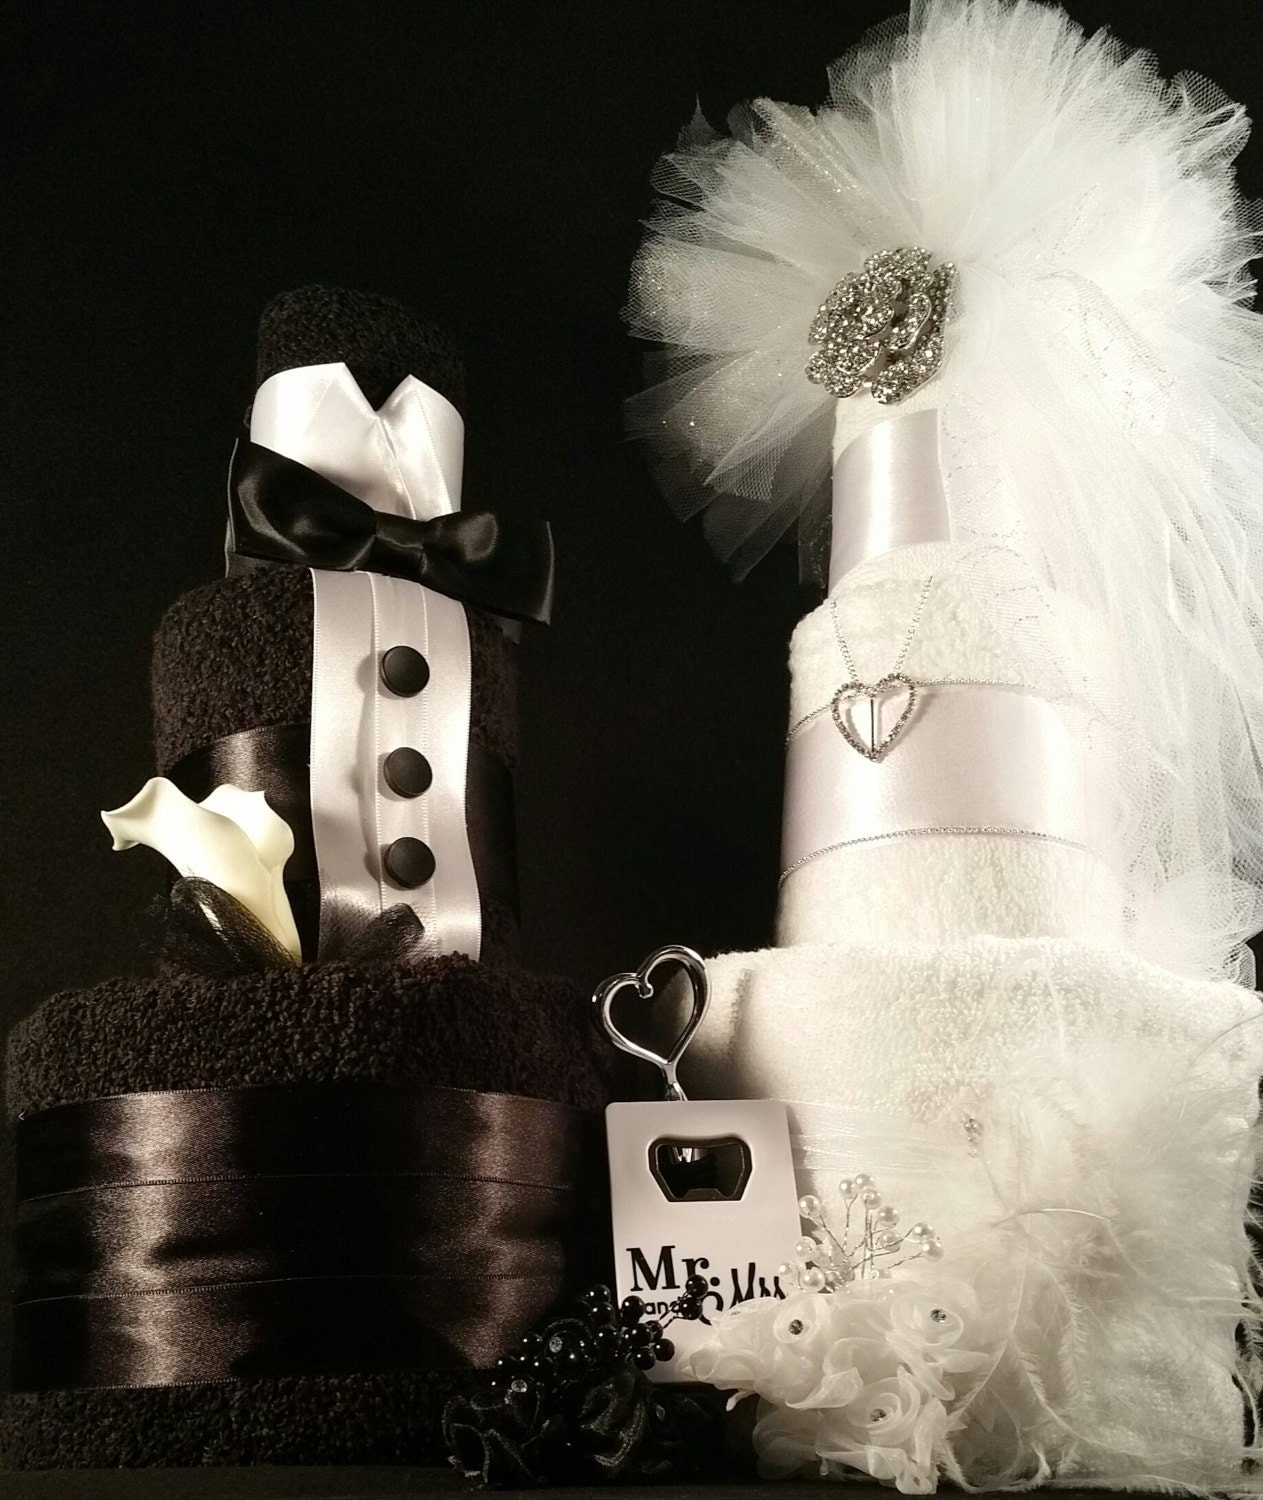 3 Tier Black Amp White Bride And Groom Towel Cake W Silver